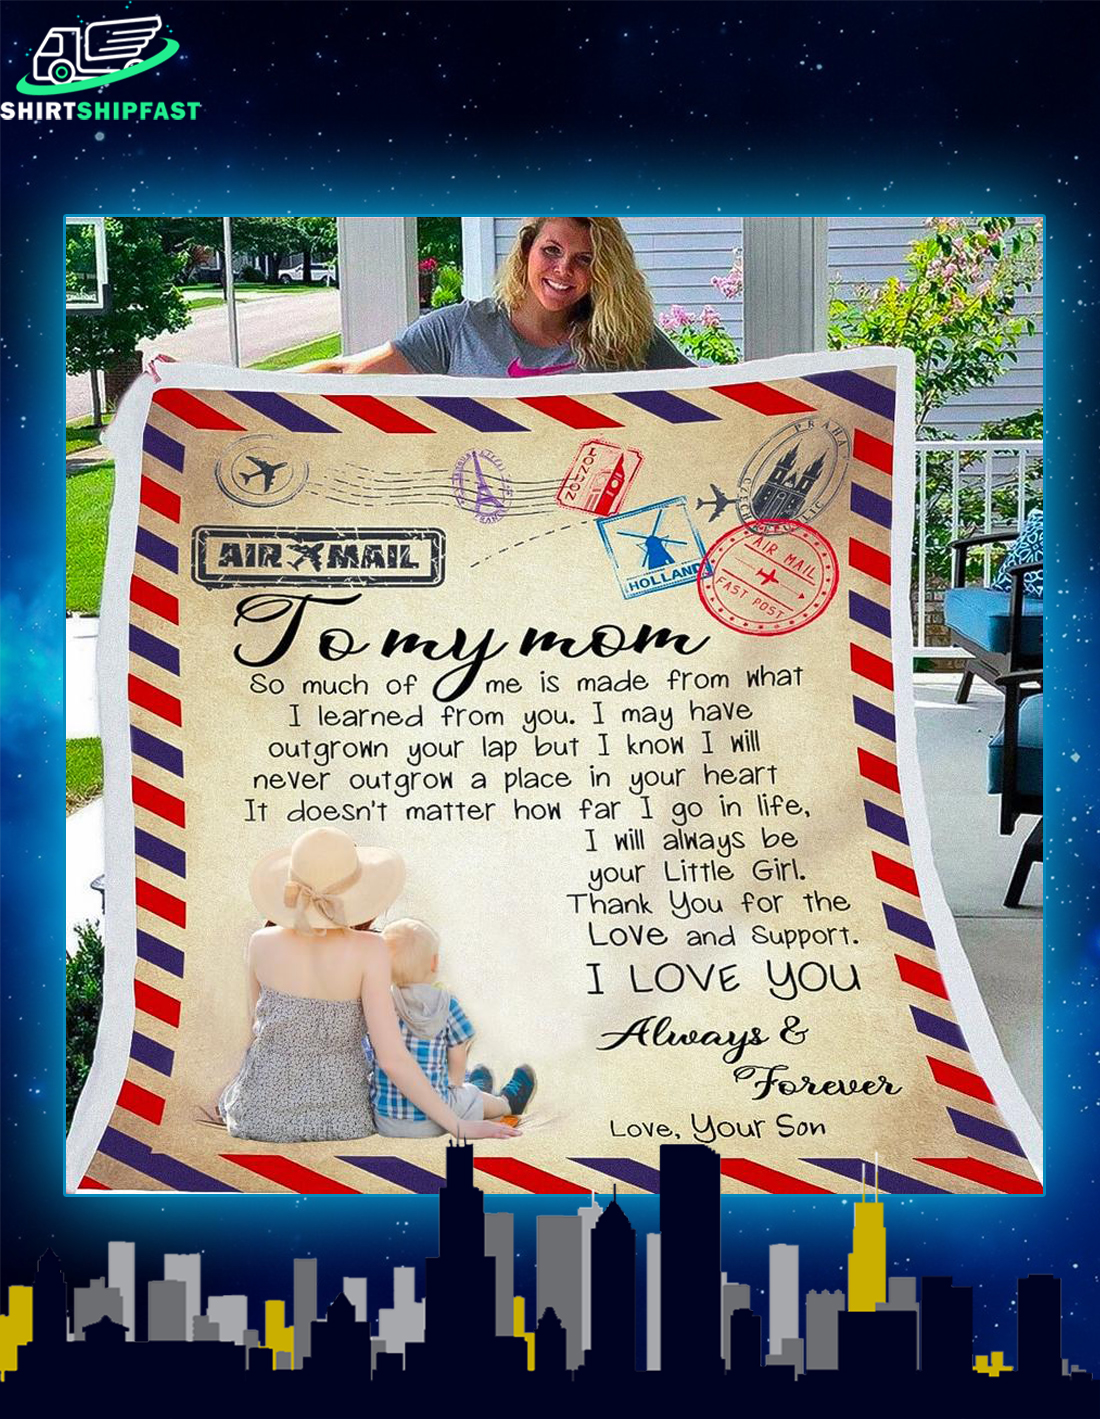 Airmail To my mom so much of me is made from what I learned from you blanket - Picture 2